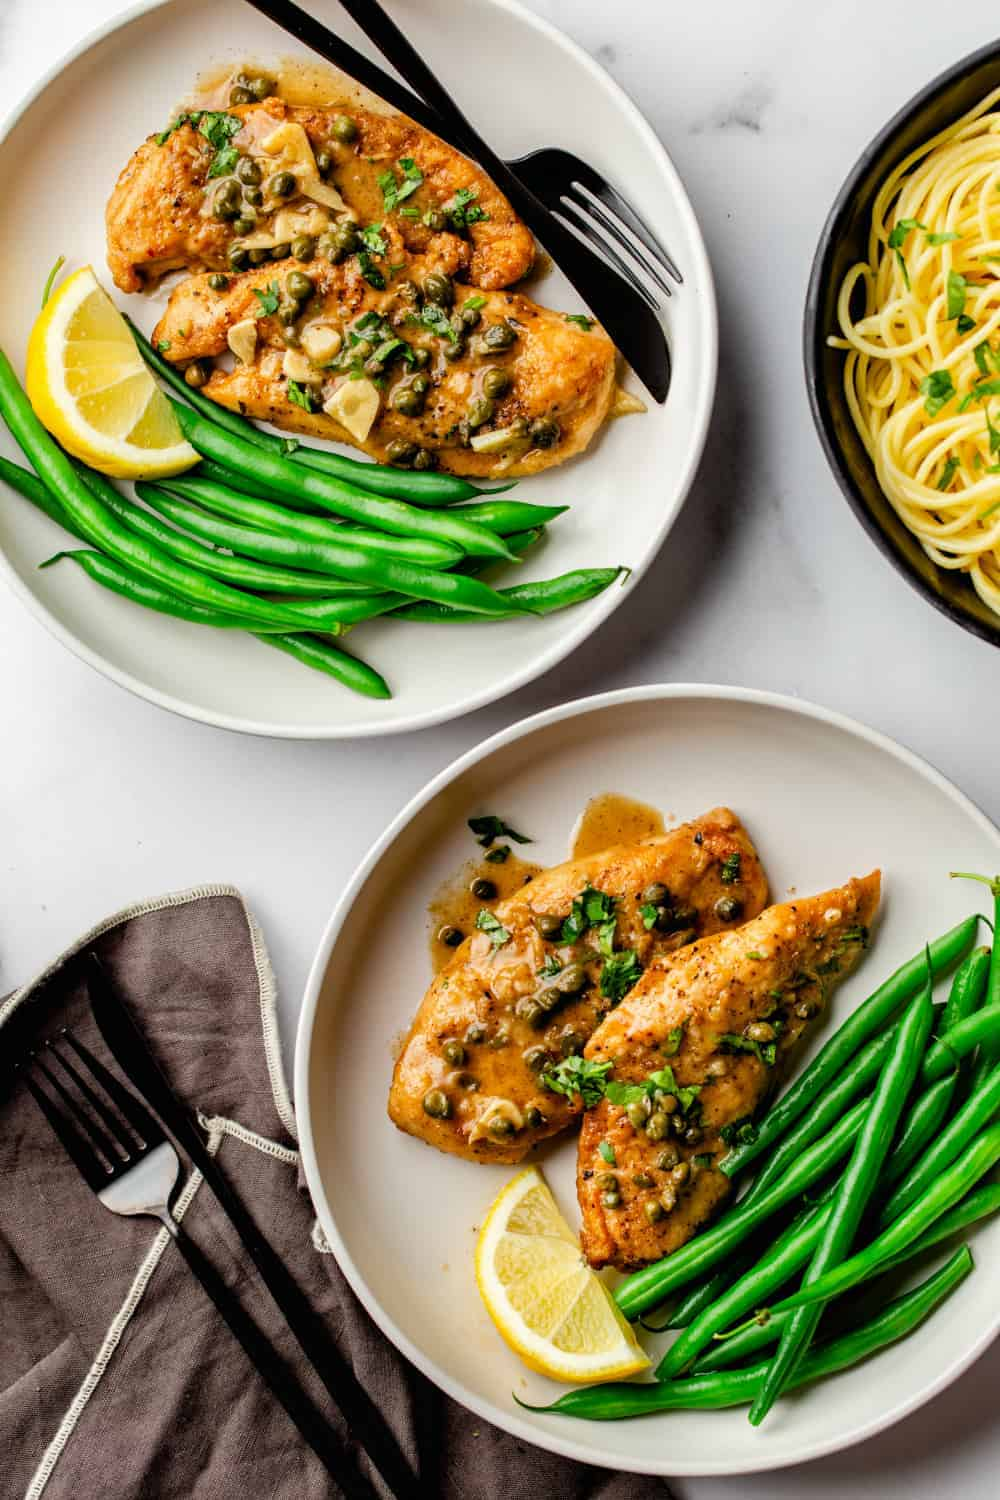 Serve Chicken Piccata with buttered pasta and a green vegetable for a complete, delicious meal.